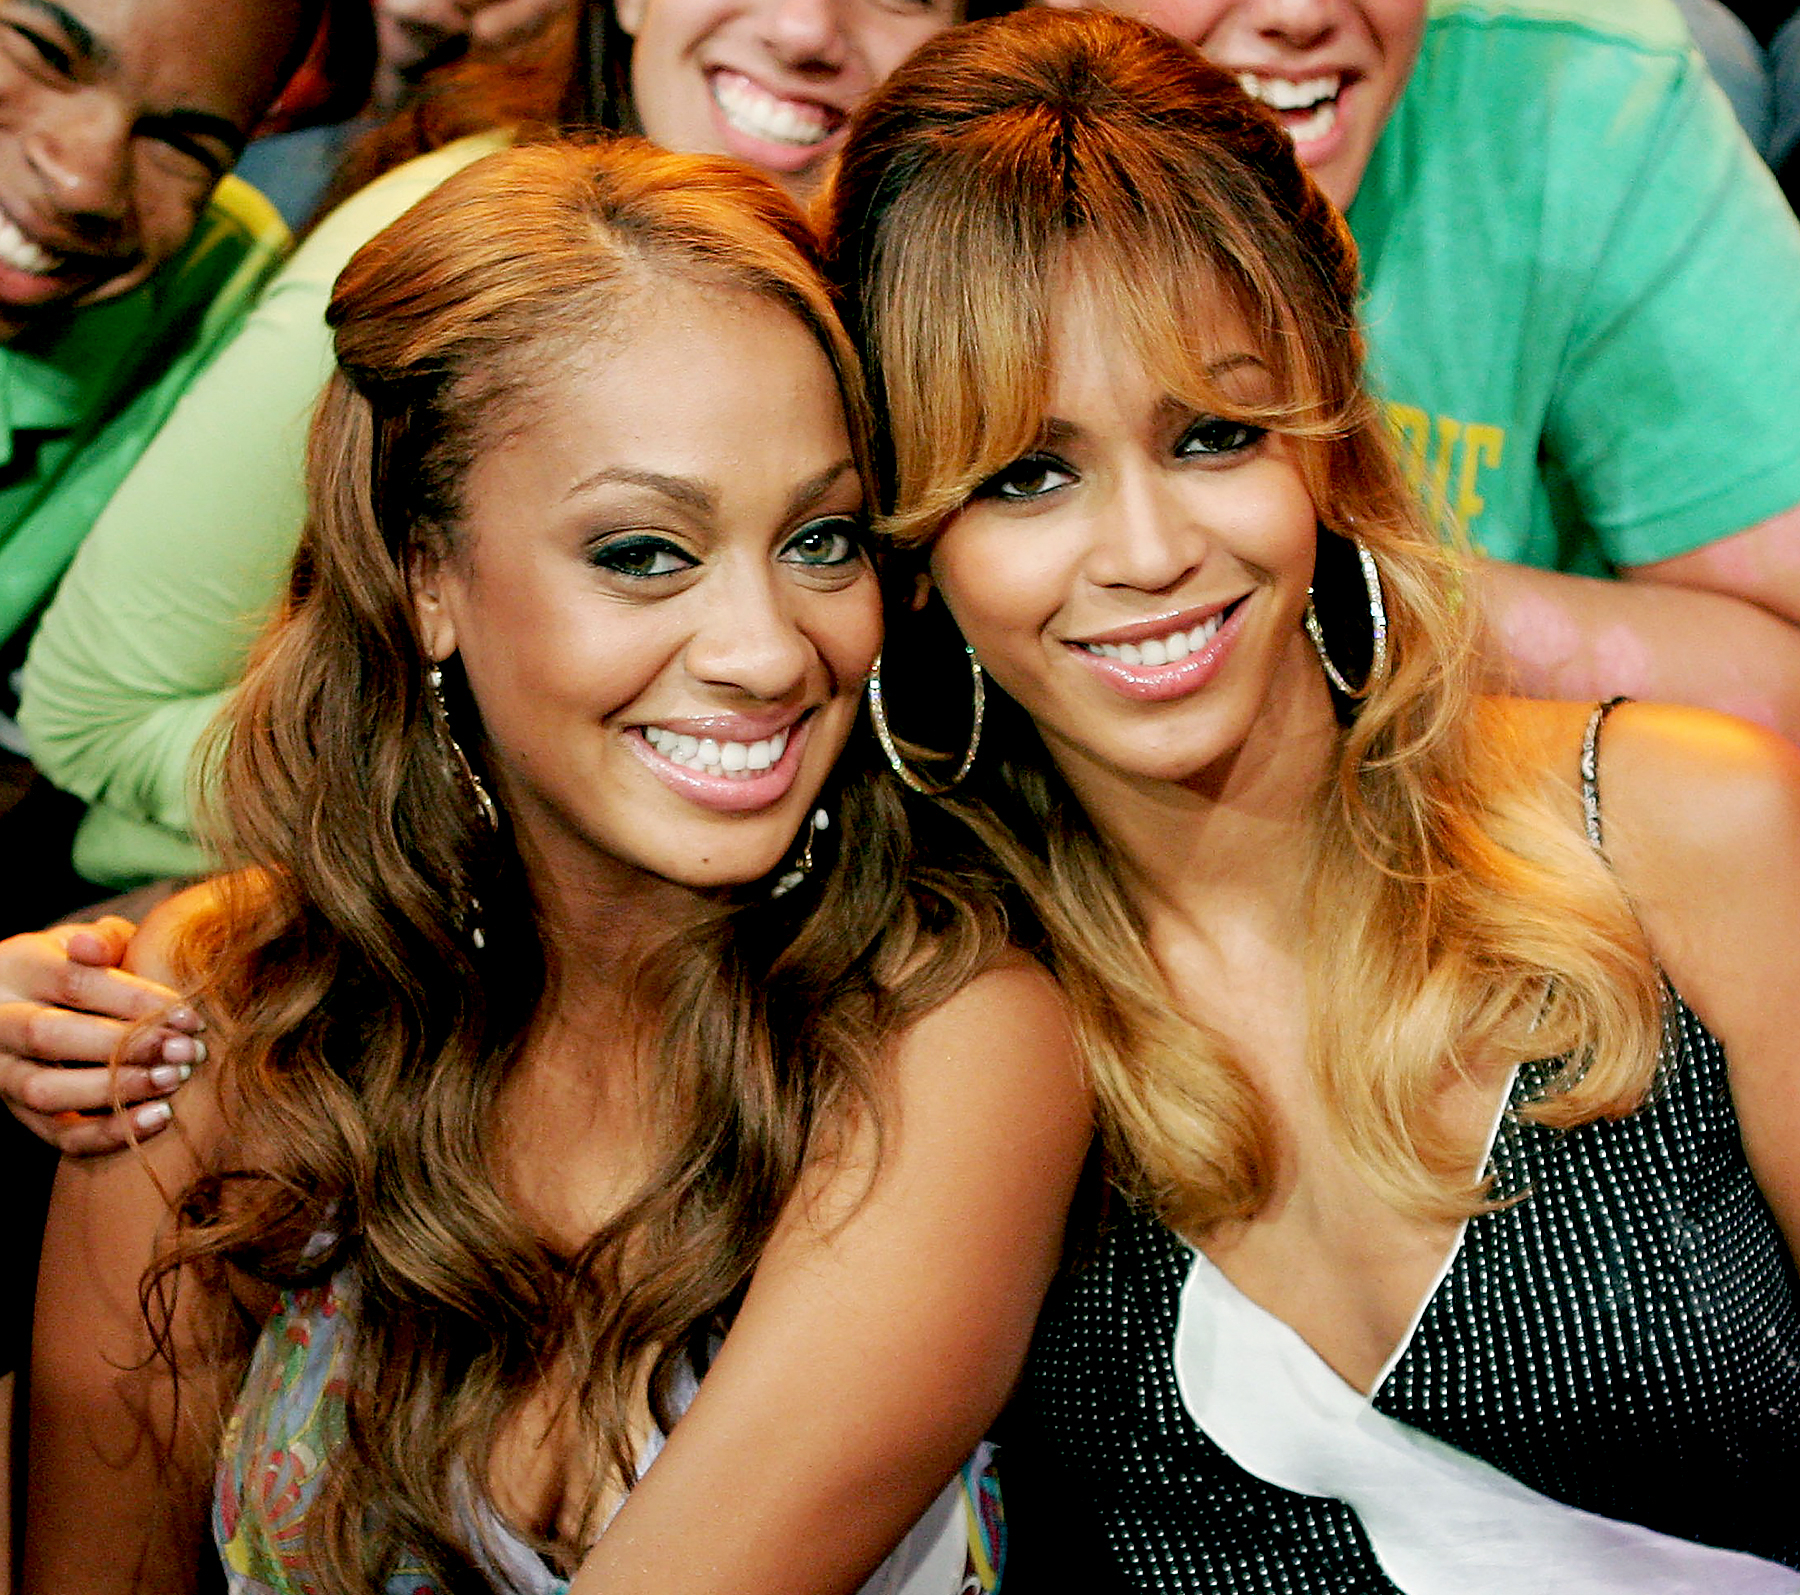 La La Anthony and Knowles pose during MTV's 'Total Request Live' at MTV Studios in New York City July 12, 2006.